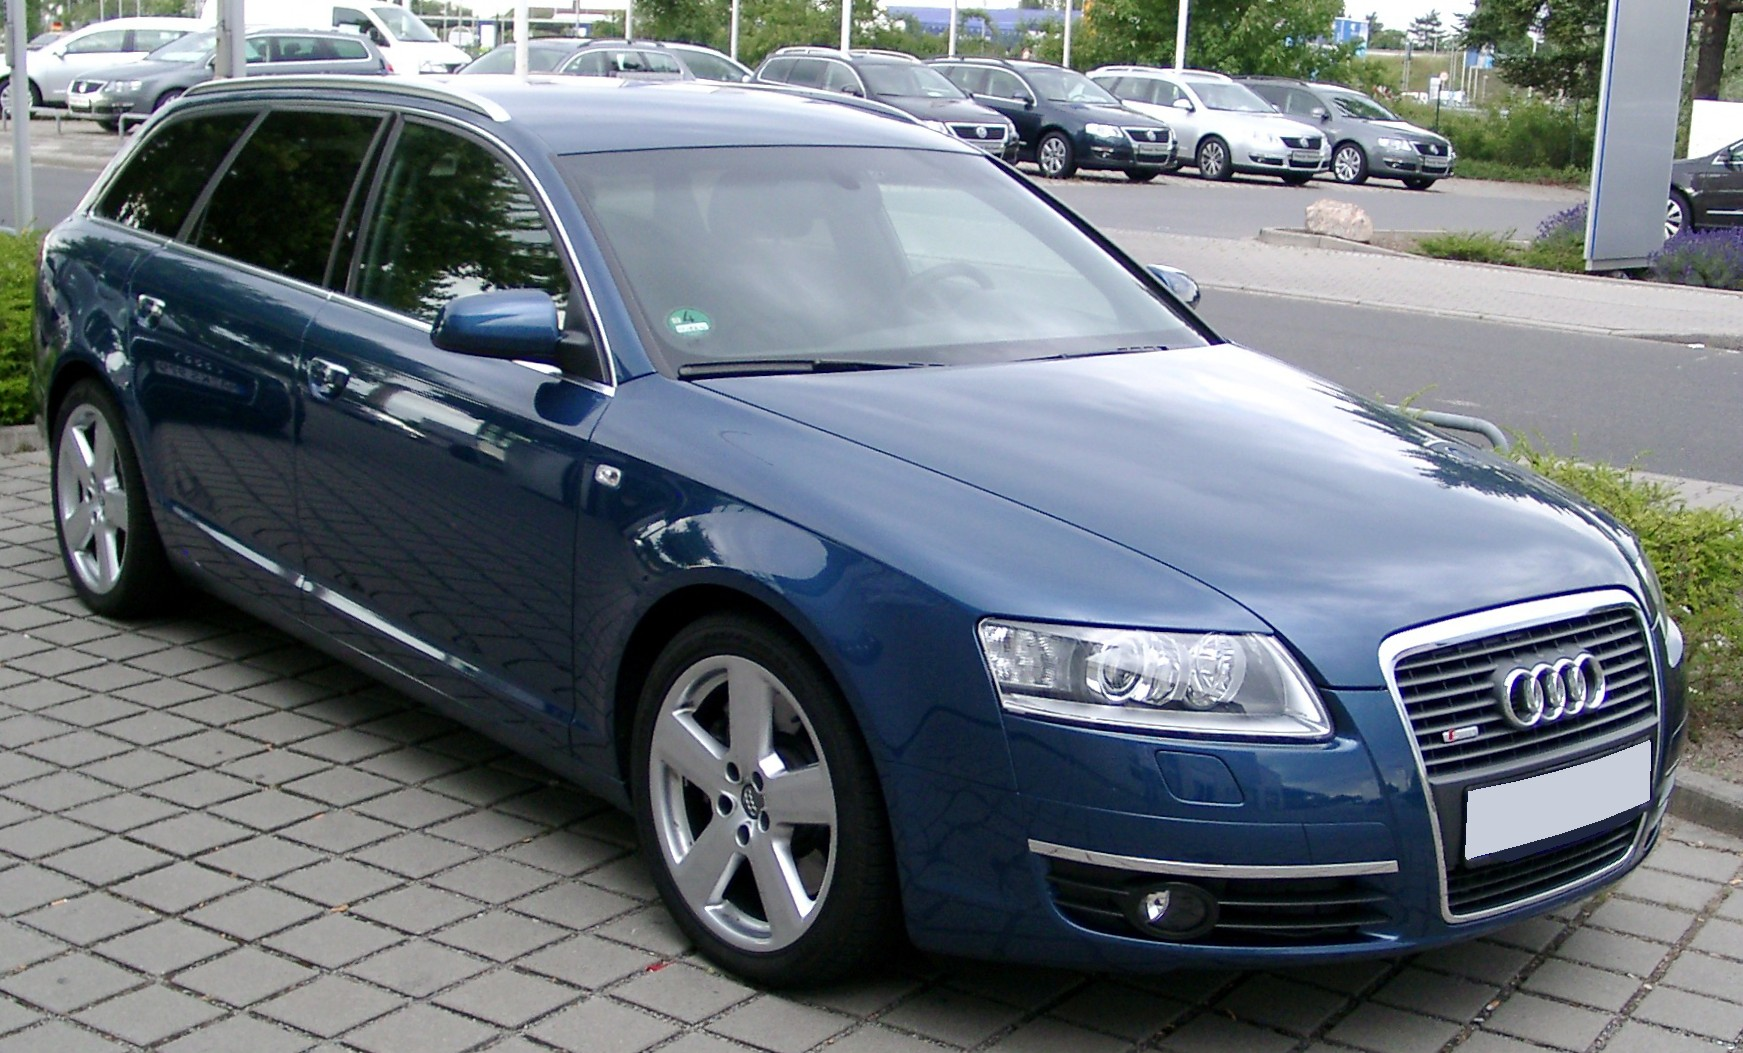 file audi a6 c6 avant front wikimedia commons. Black Bedroom Furniture Sets. Home Design Ideas